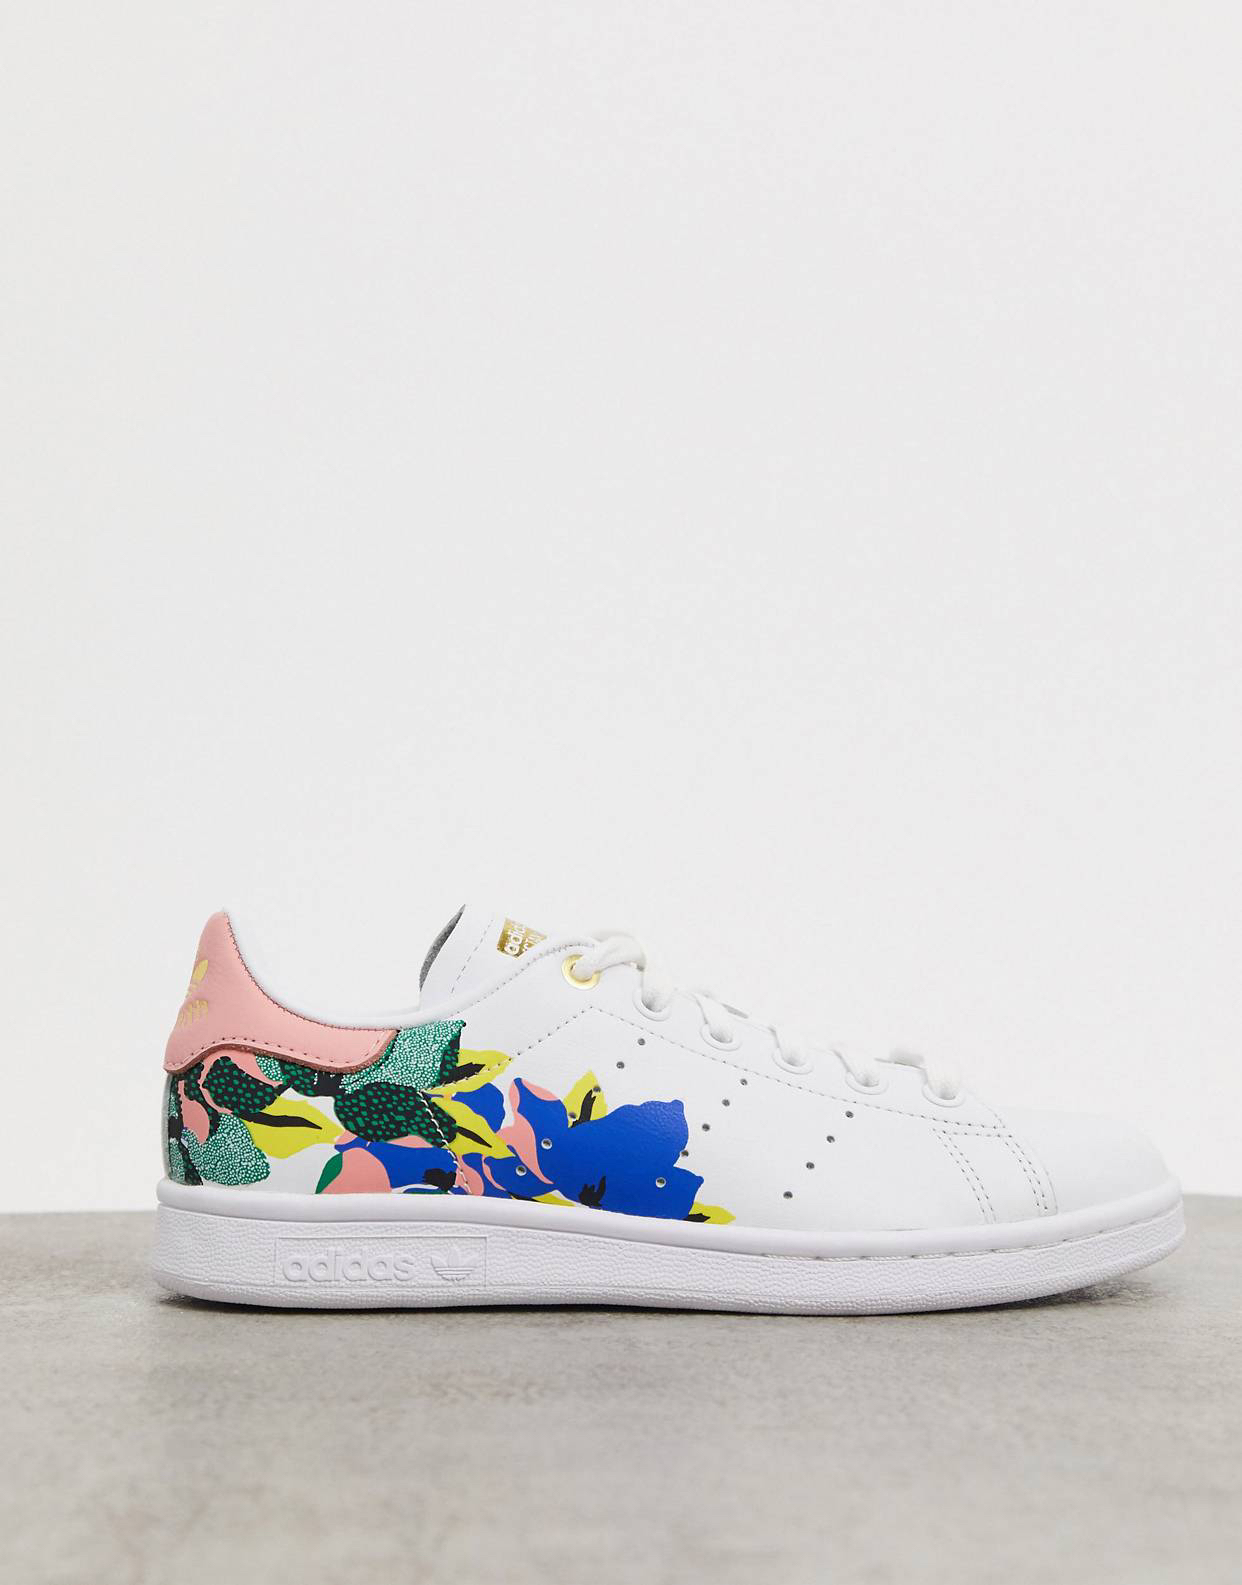 Adidas Stan Smith HER Studio